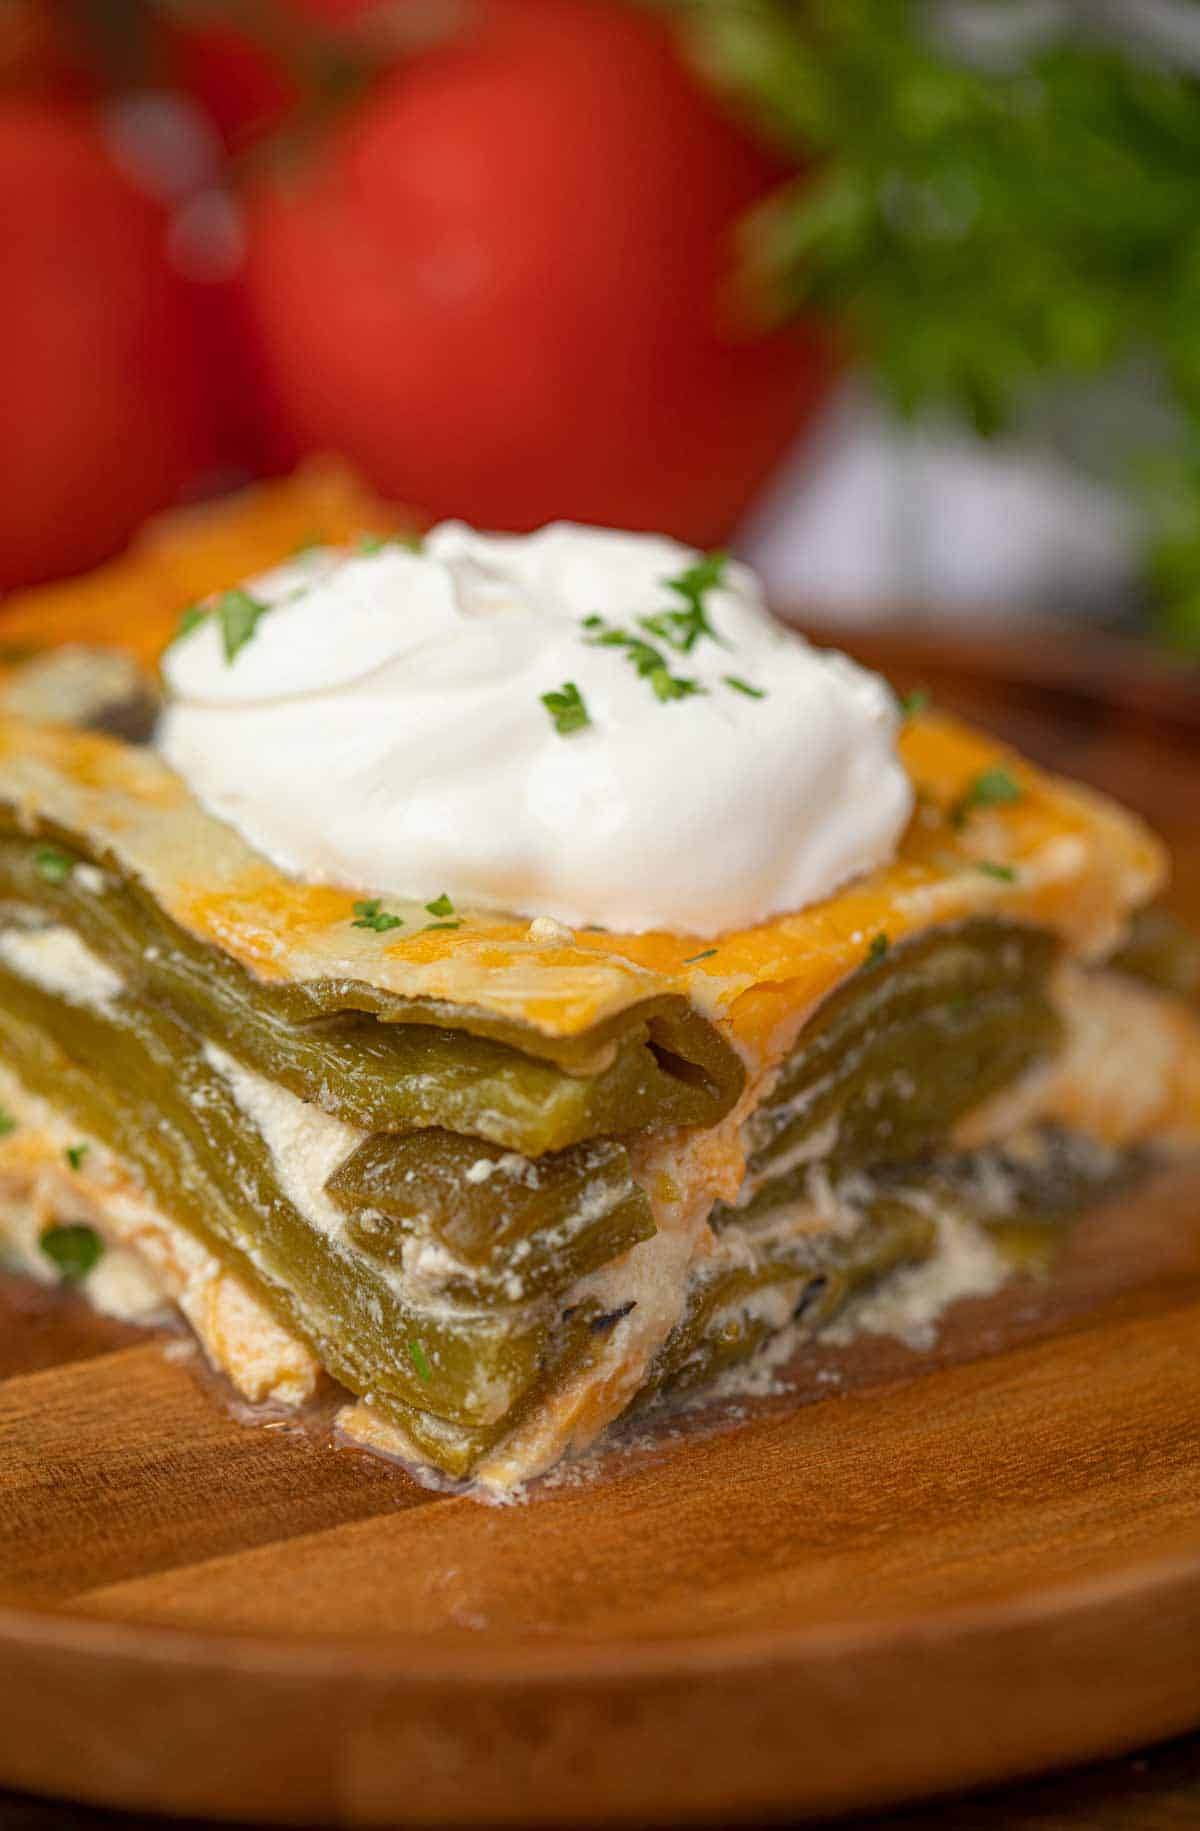 Slice of Chile Relleno Casserole with Green Chiles, Cheddar Cheese and Sour Cream on Wooden Plate